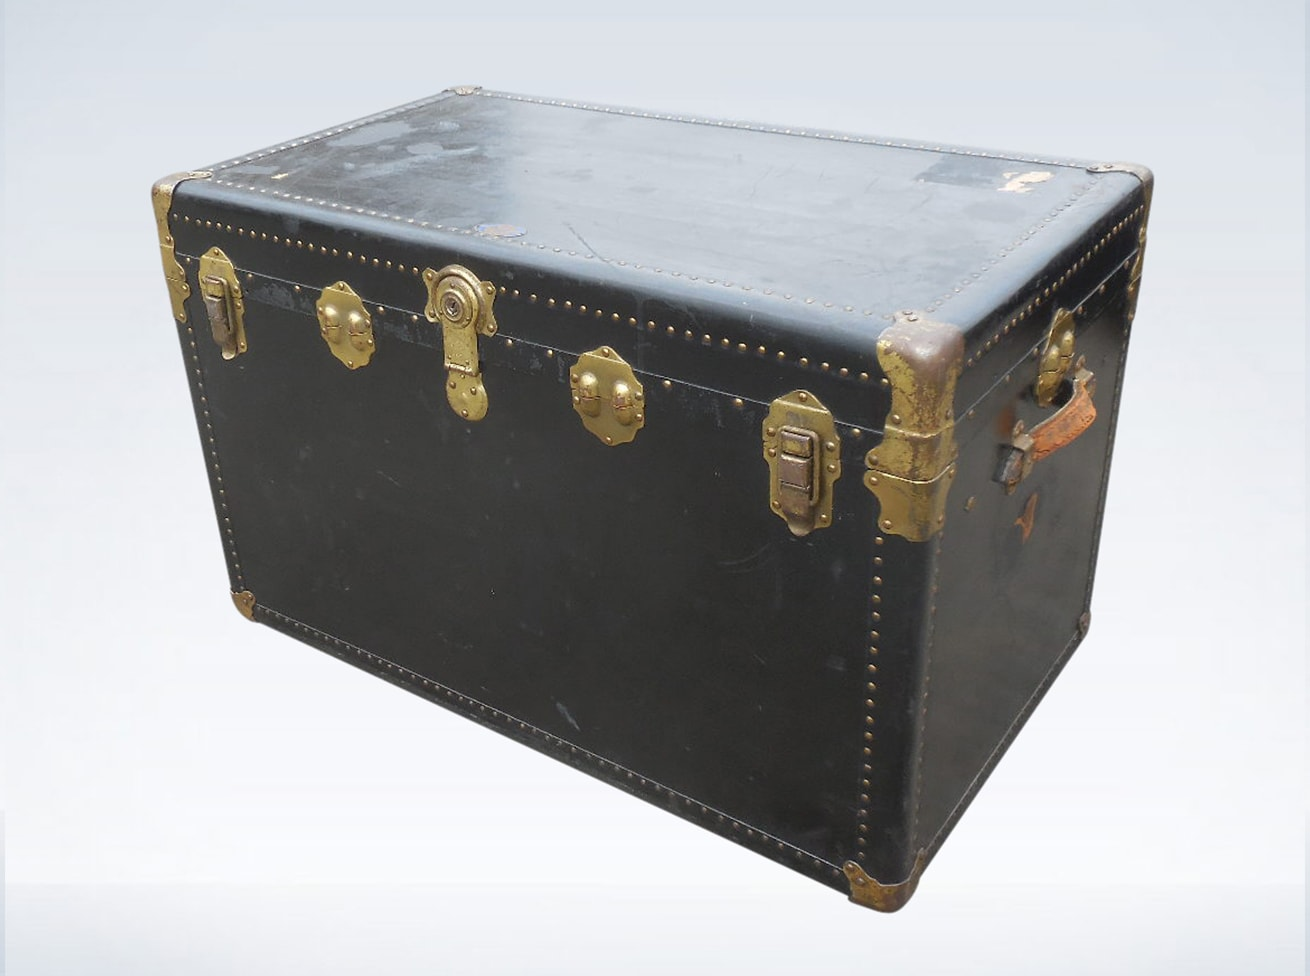 Antique Trunks, Chests & Suitcases